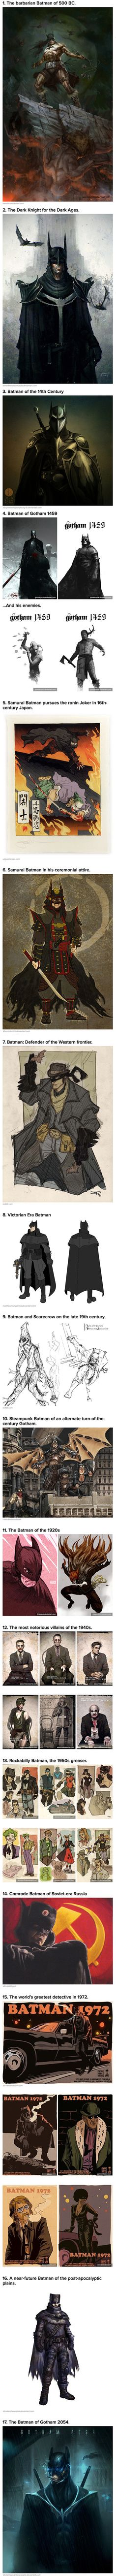 We have rounded up 17 visions of Batman throughout the ages.